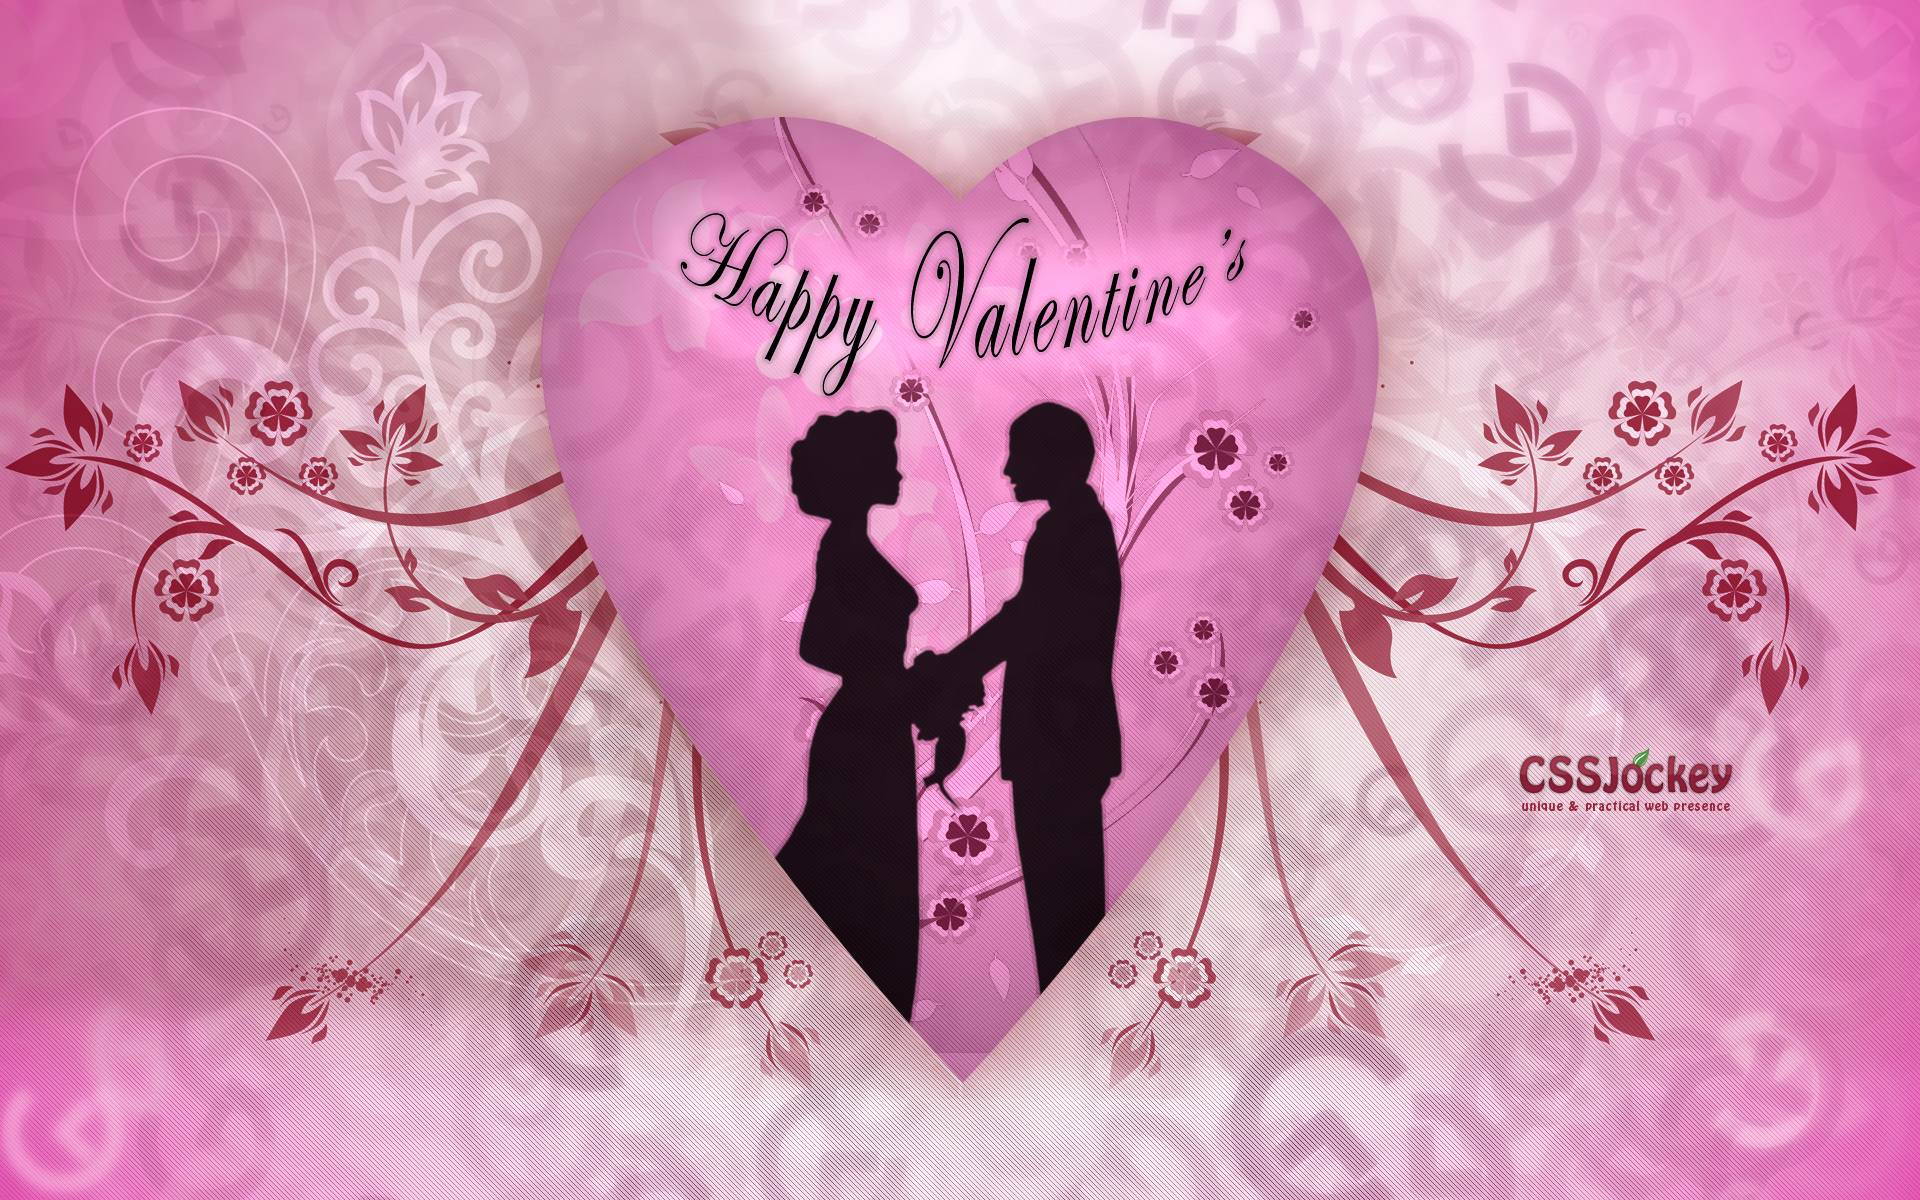 Happy Valentines Day Wallpapers - Full HD wallpaper search